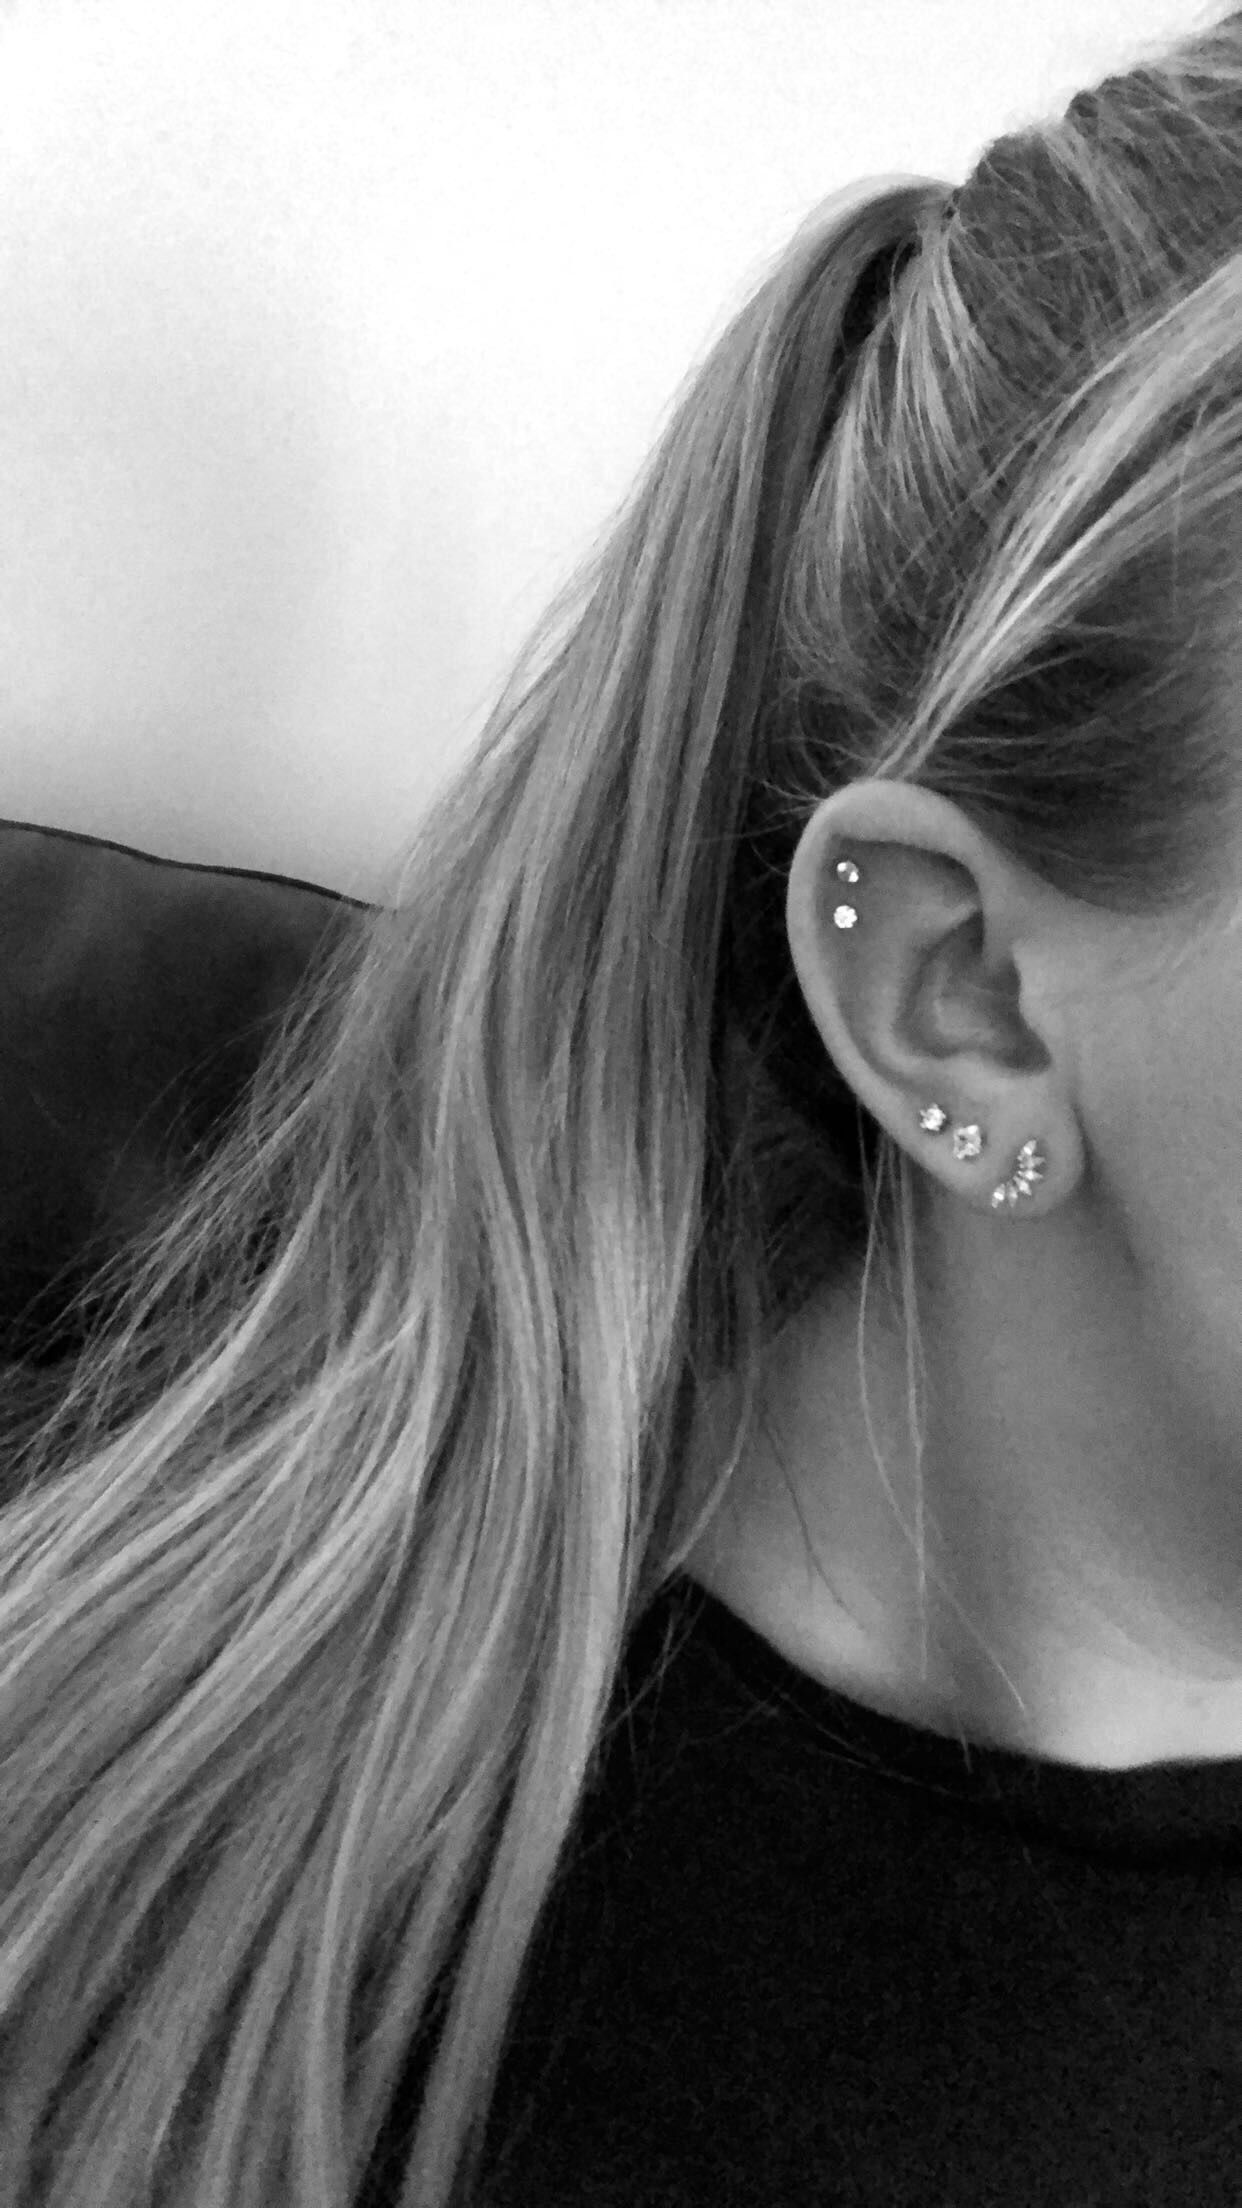 Ariana Grande Earrings Style Jewelry In 2019 Ear Piercings Cool